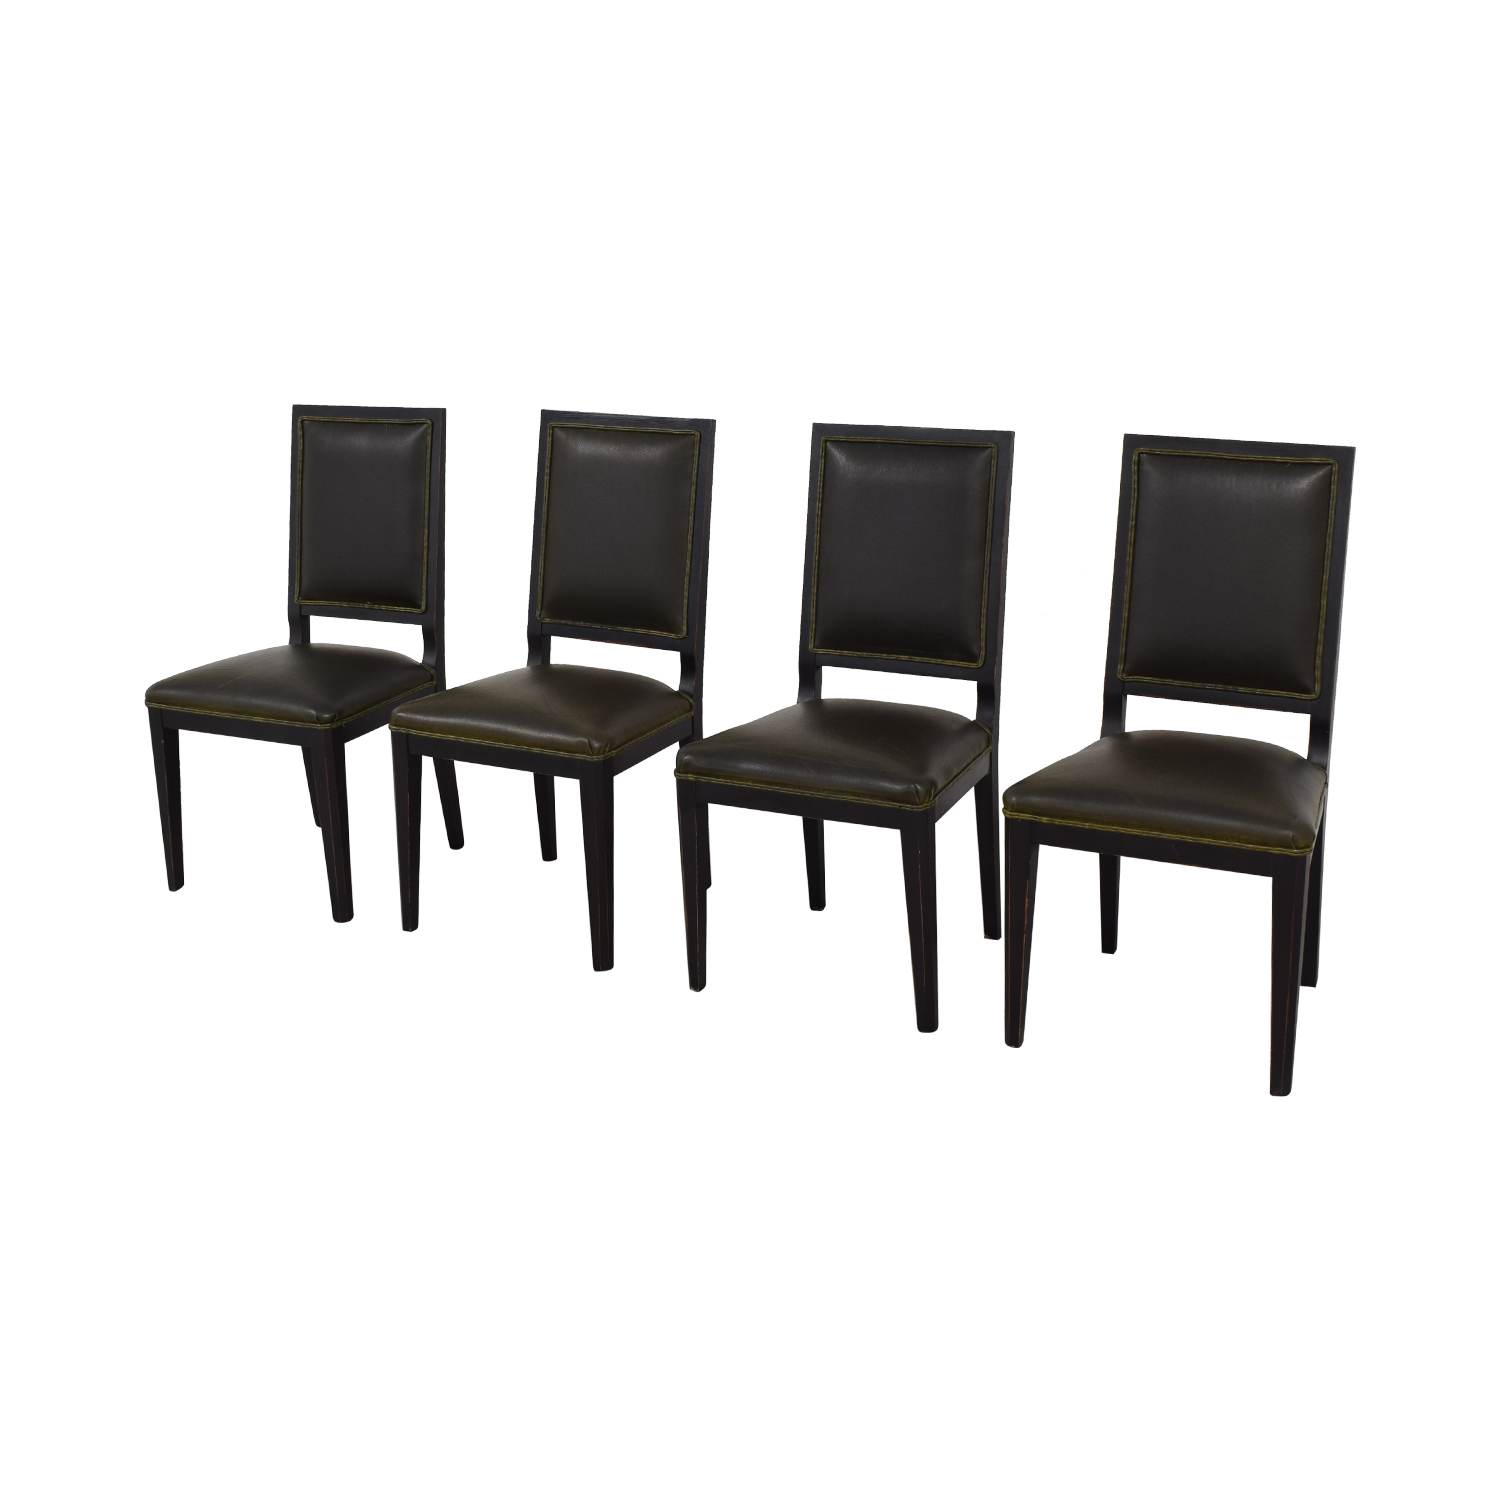 Buying & Design Buying & Design Dining Chairs pa